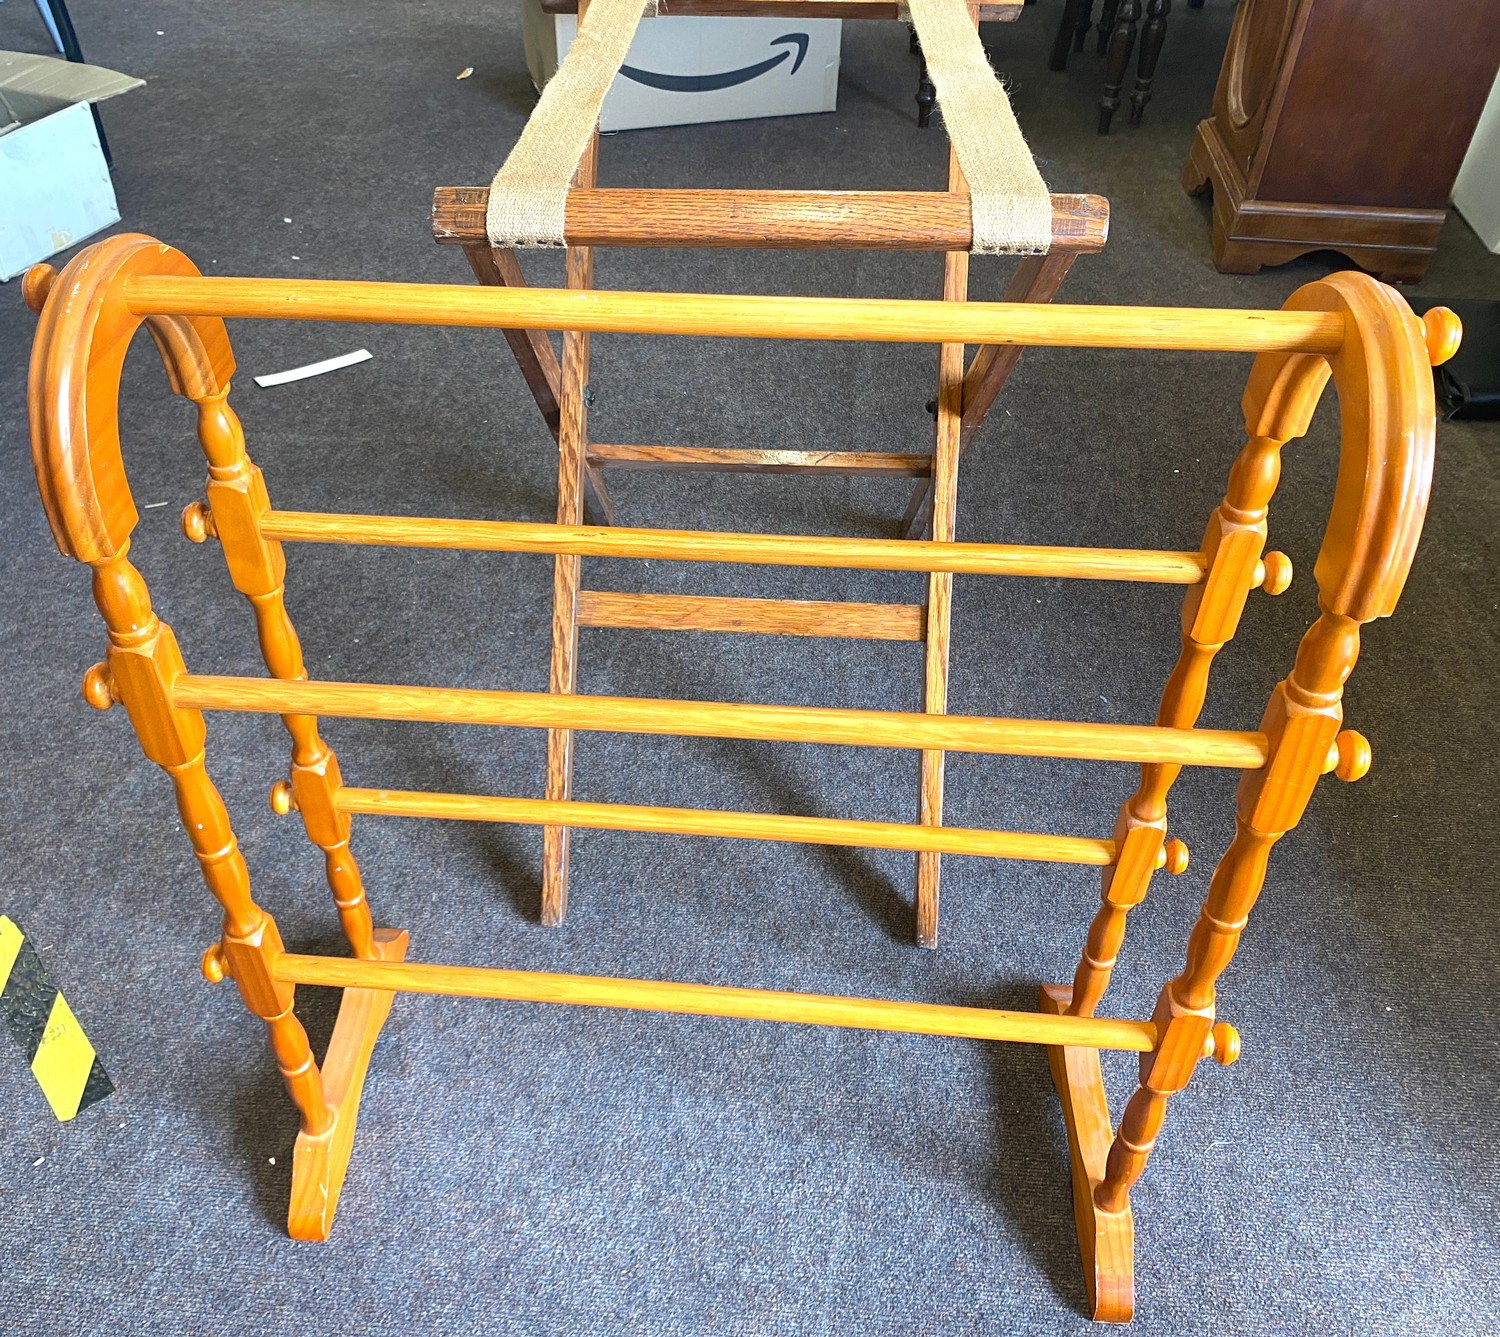 Vintage suitcase stand and a towel rail - Image 3 of 3